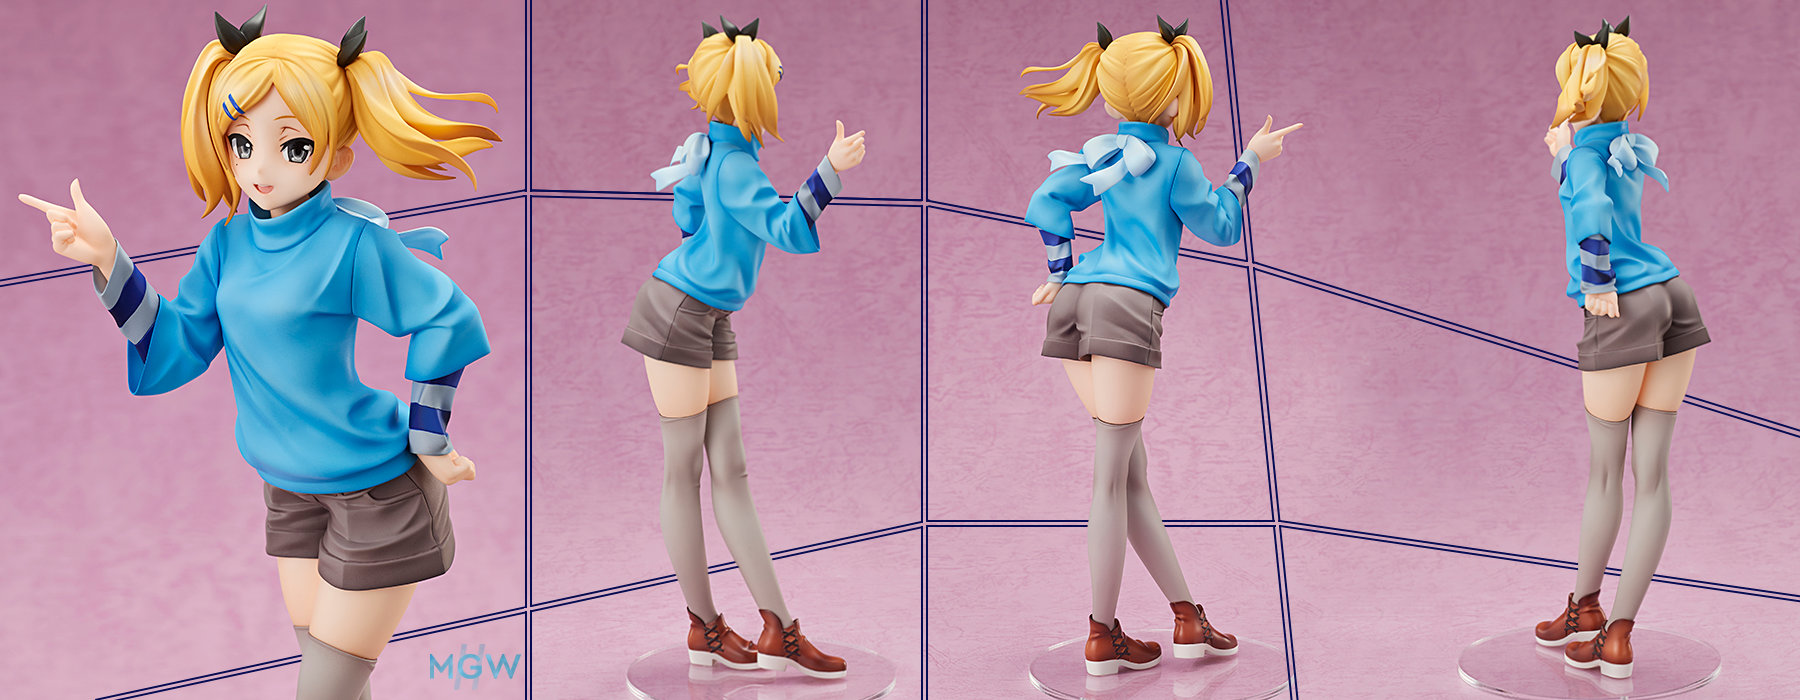 Yano Erika by AMAKUNI from Shirobako MGW Anime Figure Pre order Guide